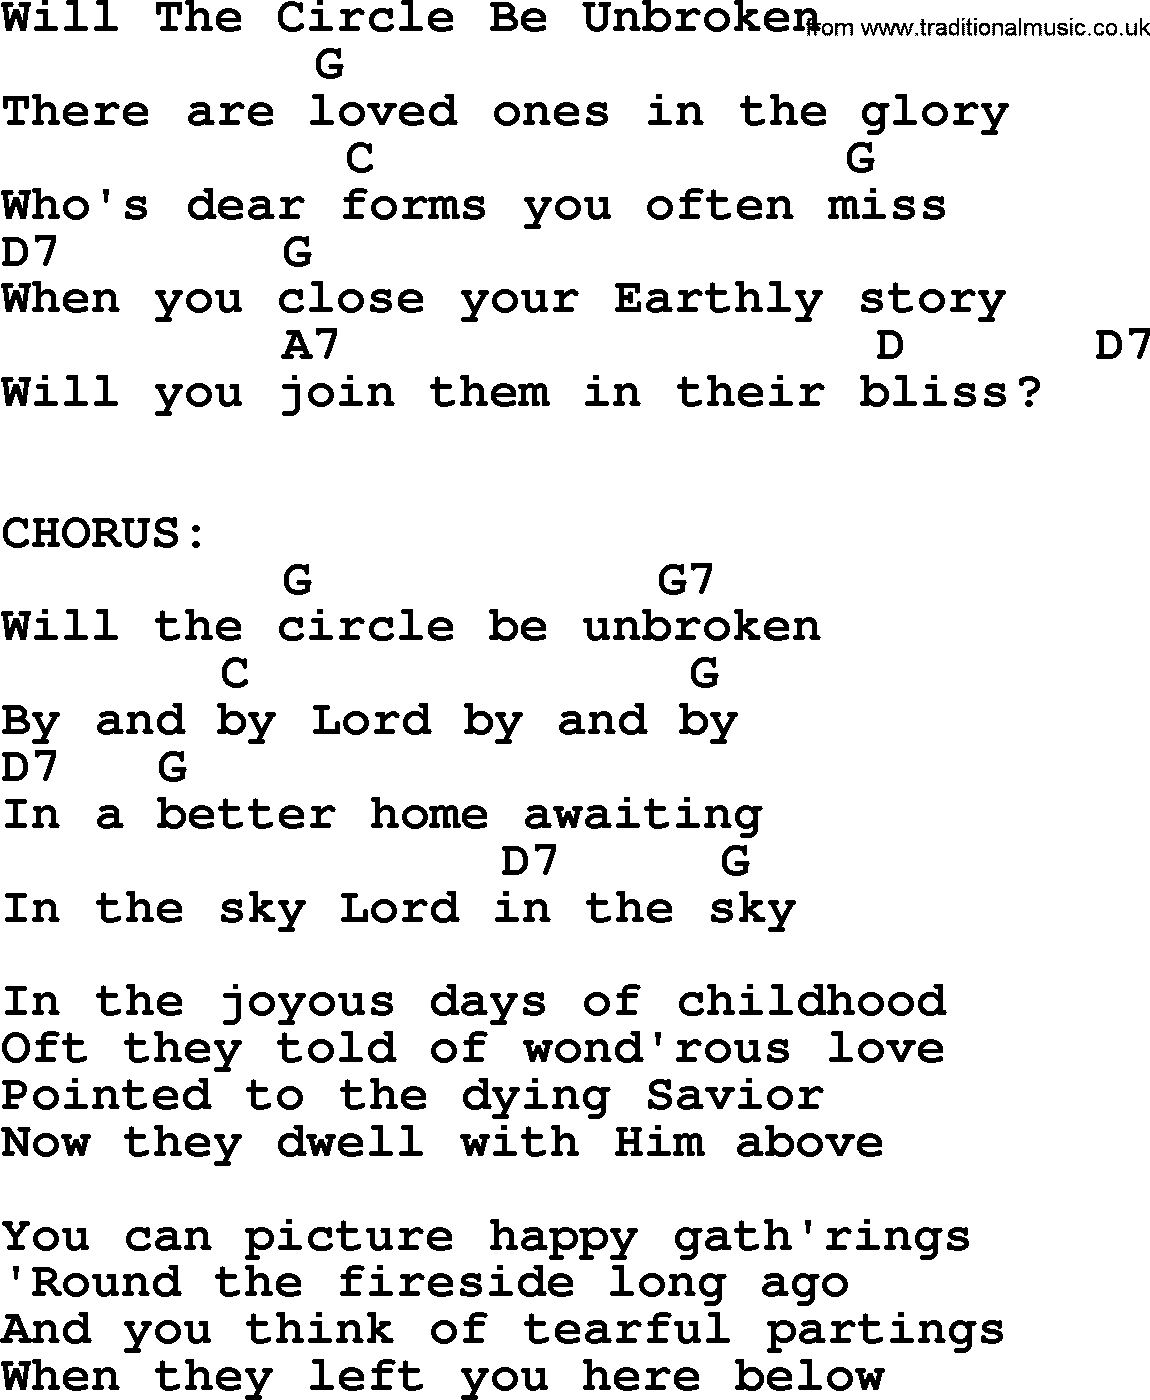 Will The Circle Be Unbroken   Bluegrass lyrics with chords